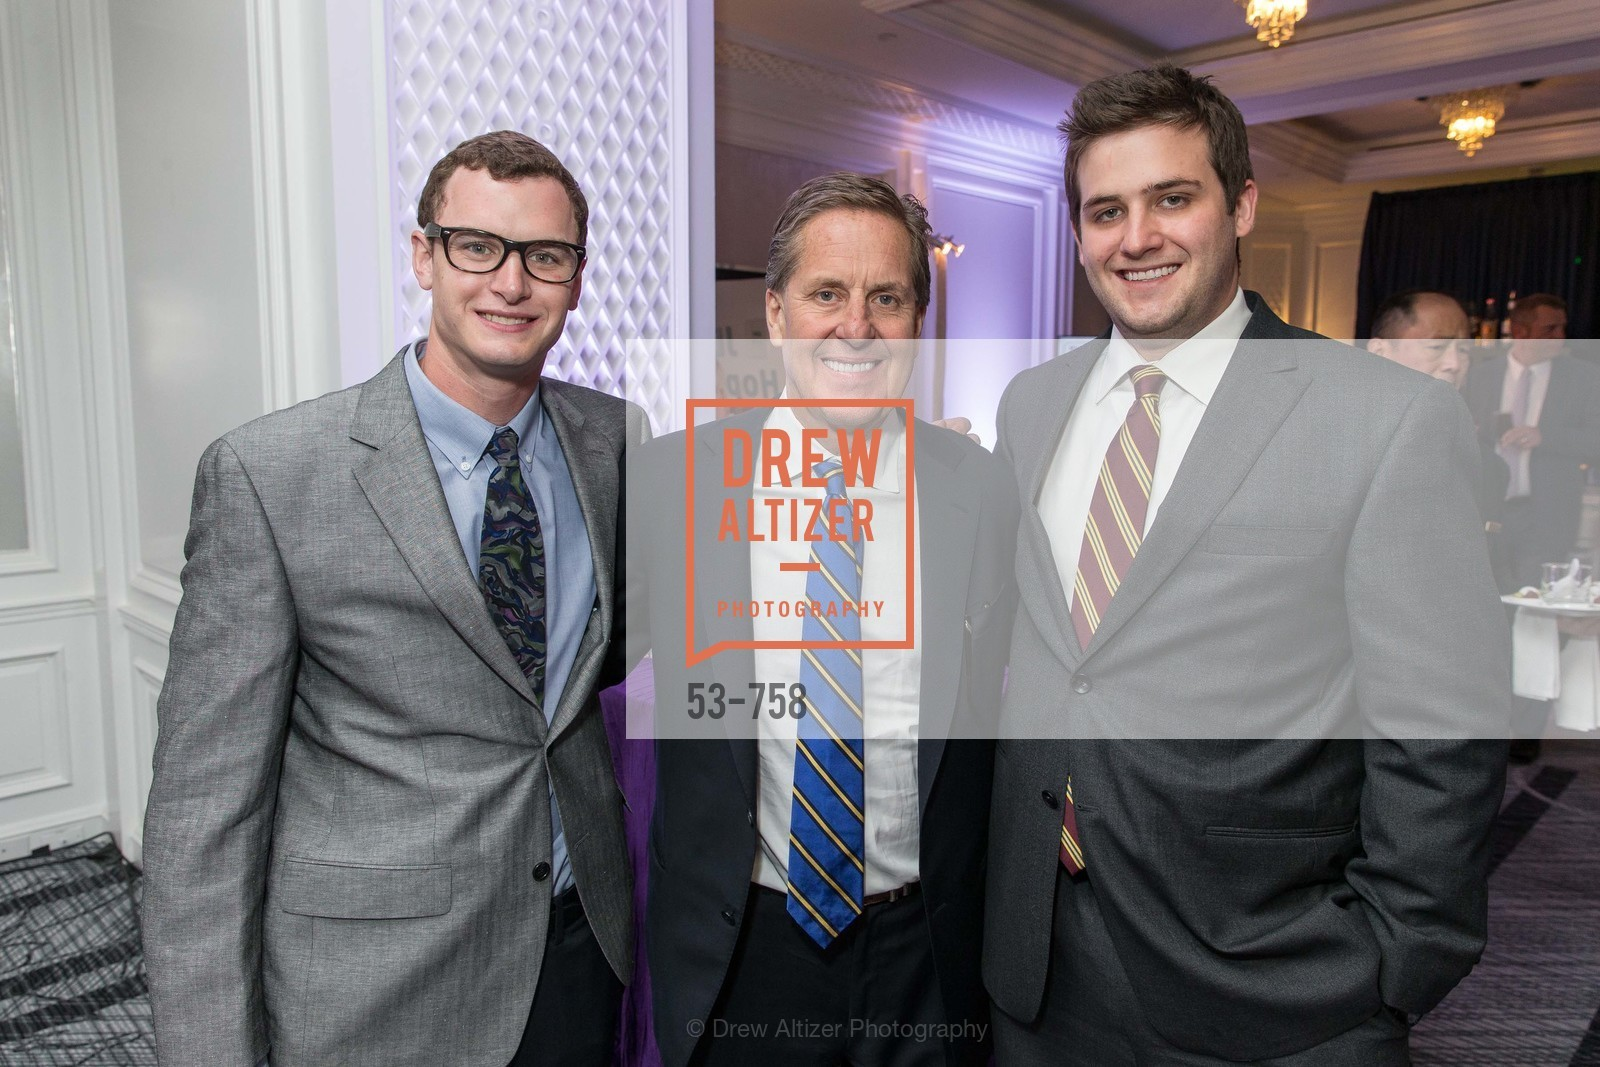 Conner Todd, Mark Tharp, Will Tharp, JUVENILE DIABETES RESEARCH FOUNDATION  Hope Gala, US, May 30th, 2015,Drew Altizer, Drew Altizer Photography, full-service agency, private events, San Francisco photographer, photographer california